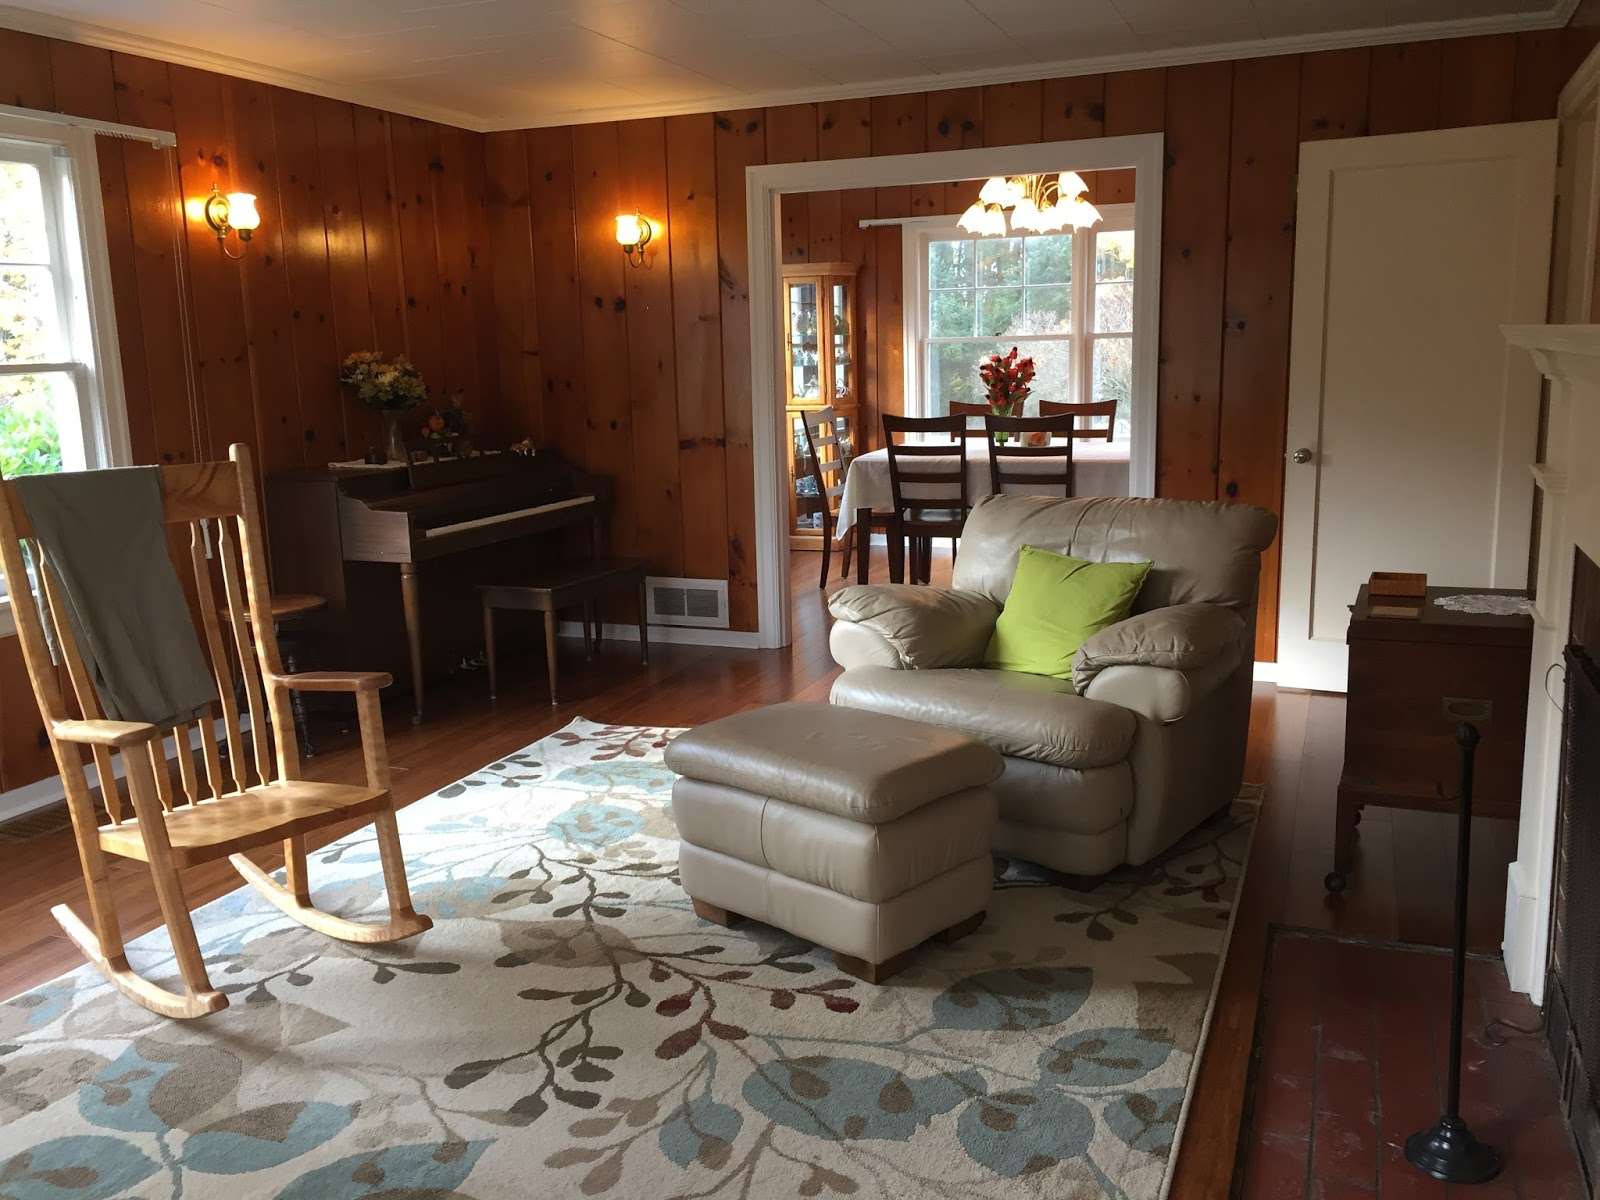 Decorating A Room With Knotty Pine Walls